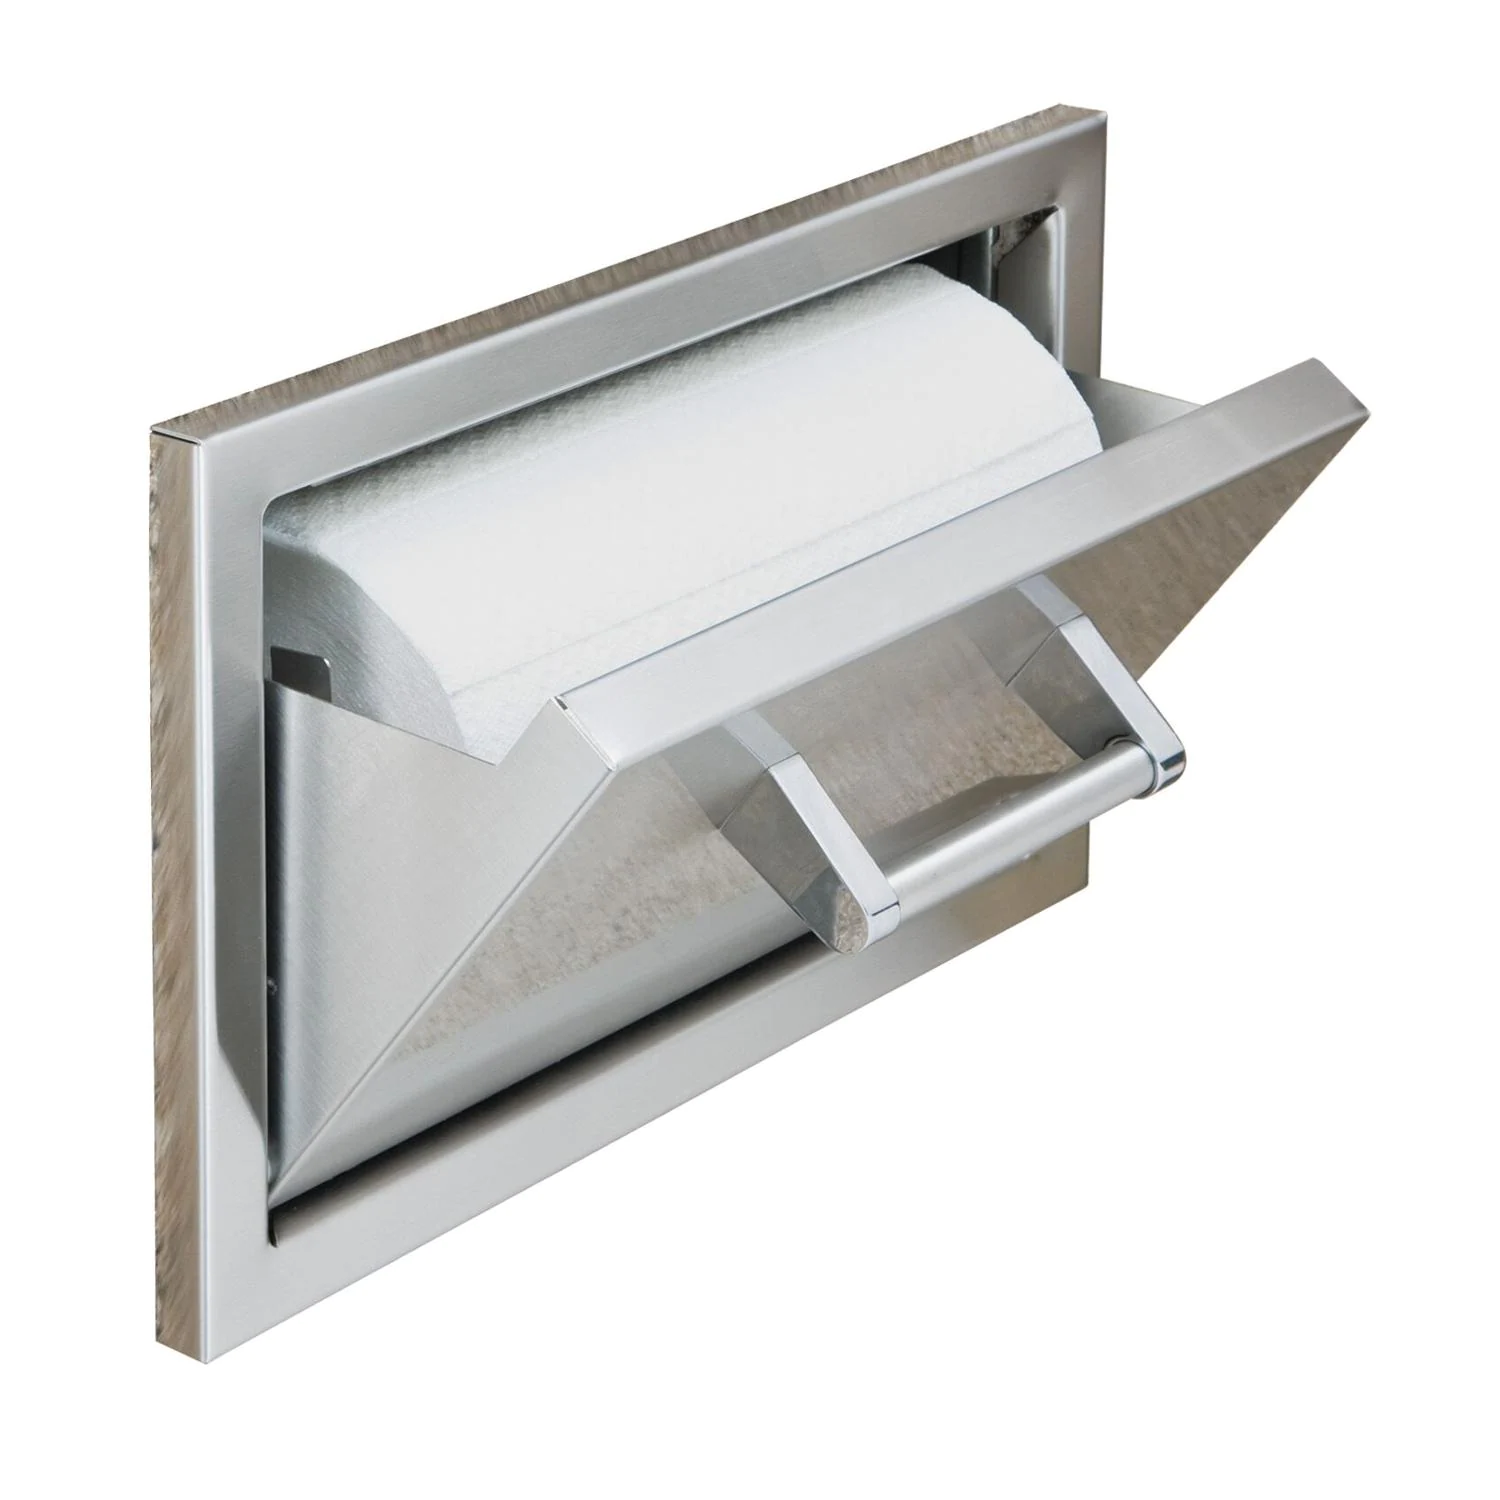 Delta Heat 15-Inch Stainless Steel Paper Towel Holder - DHPT15-B